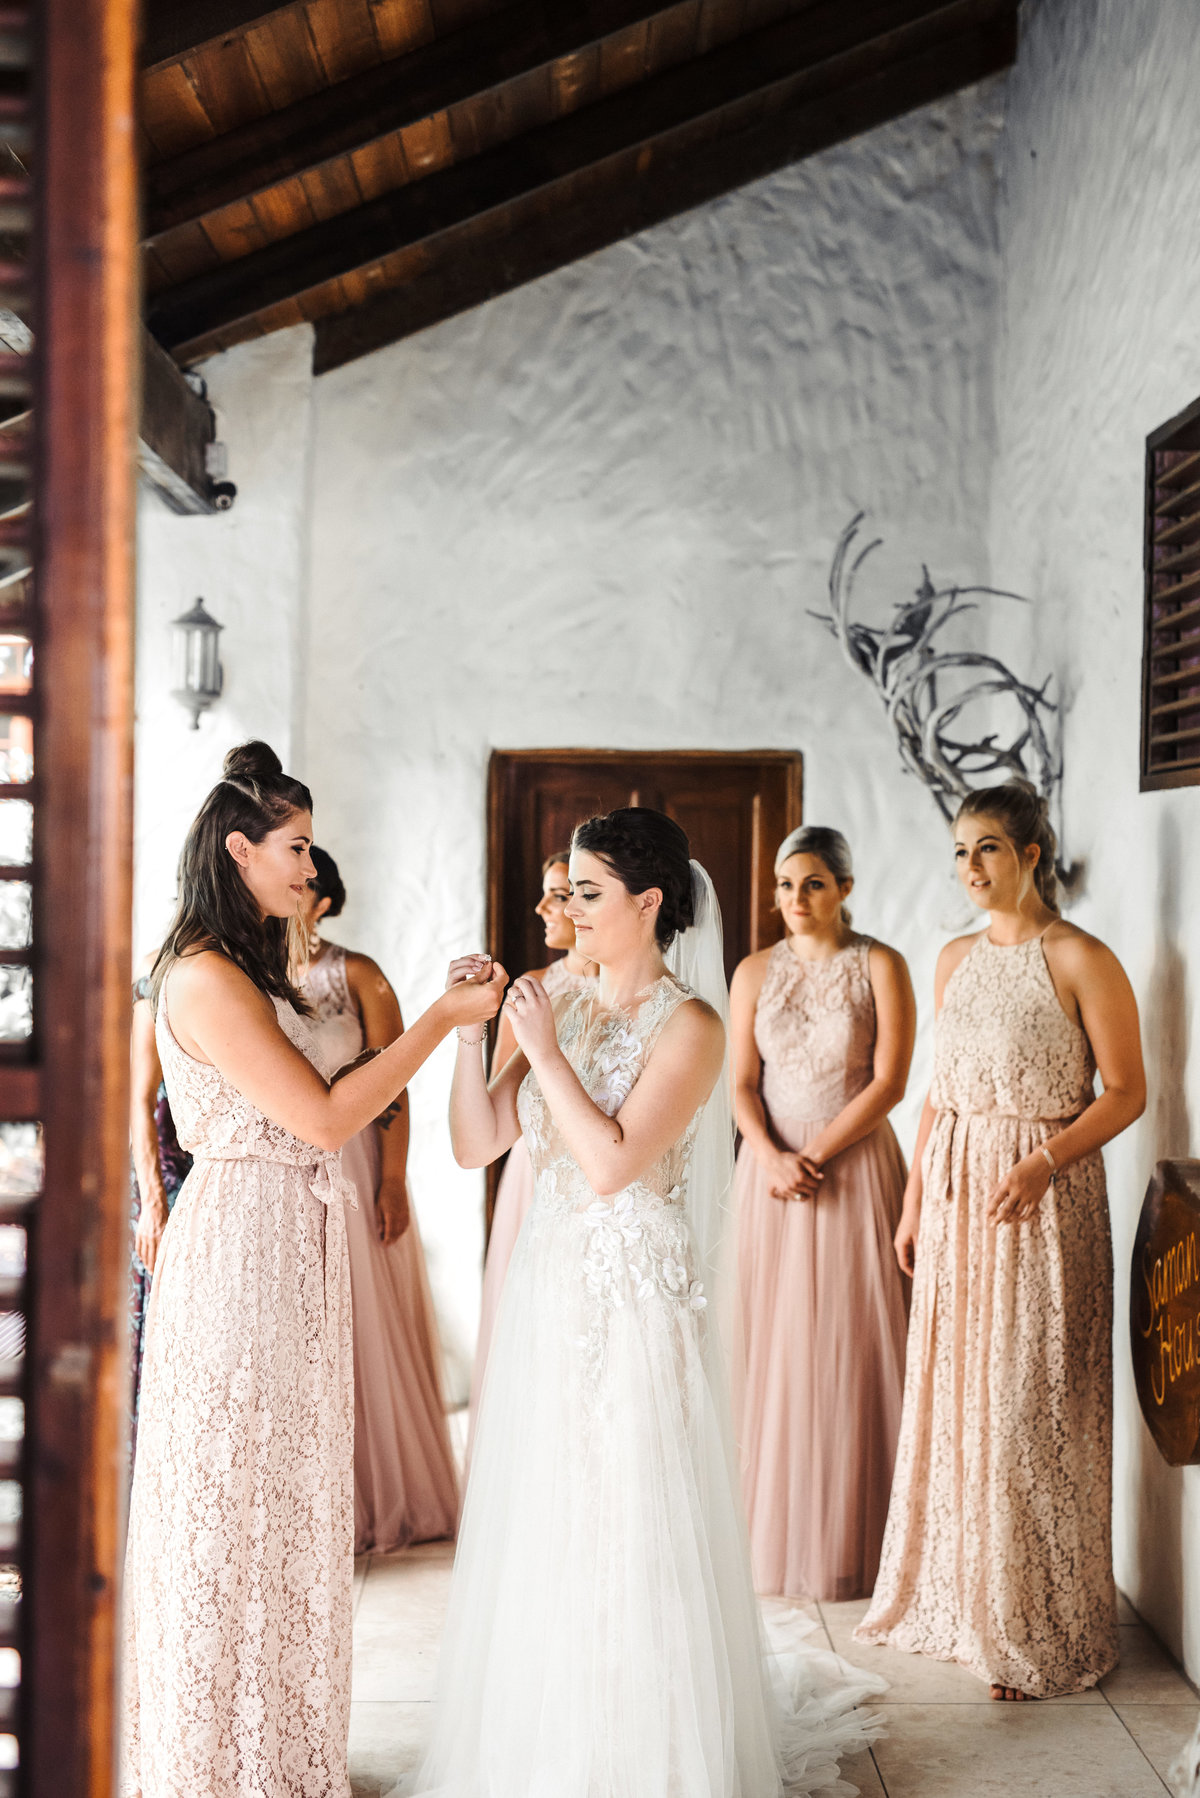 Cap Maison St Lucia Destination Wedding - 057